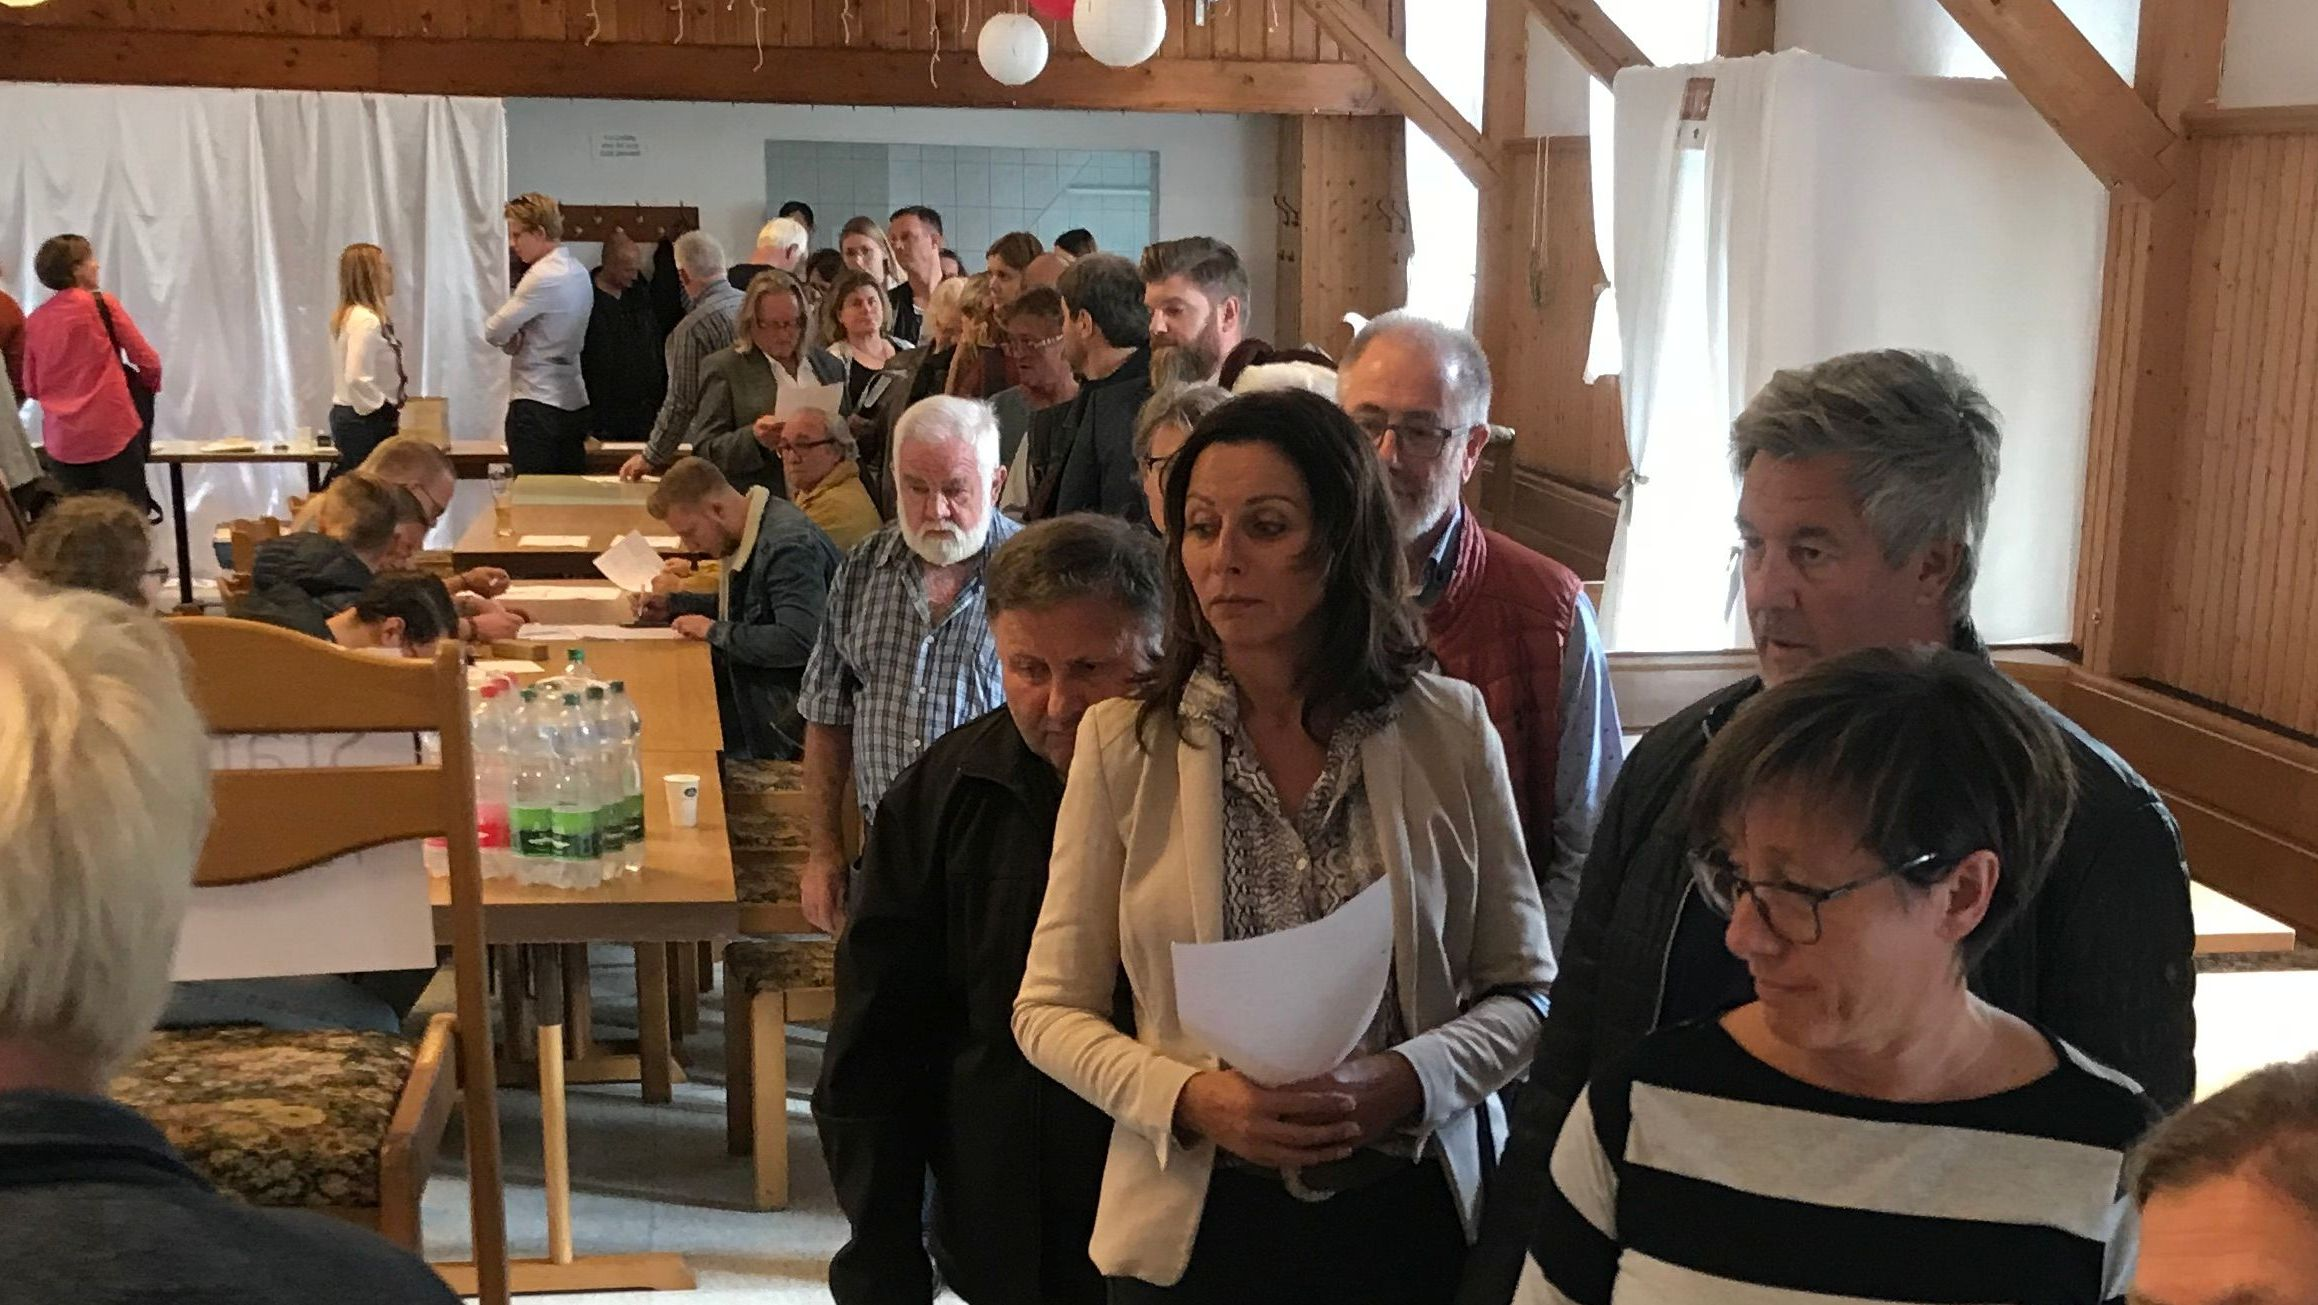 Großer Andrang beim Komparsen-Casting in Haarbach